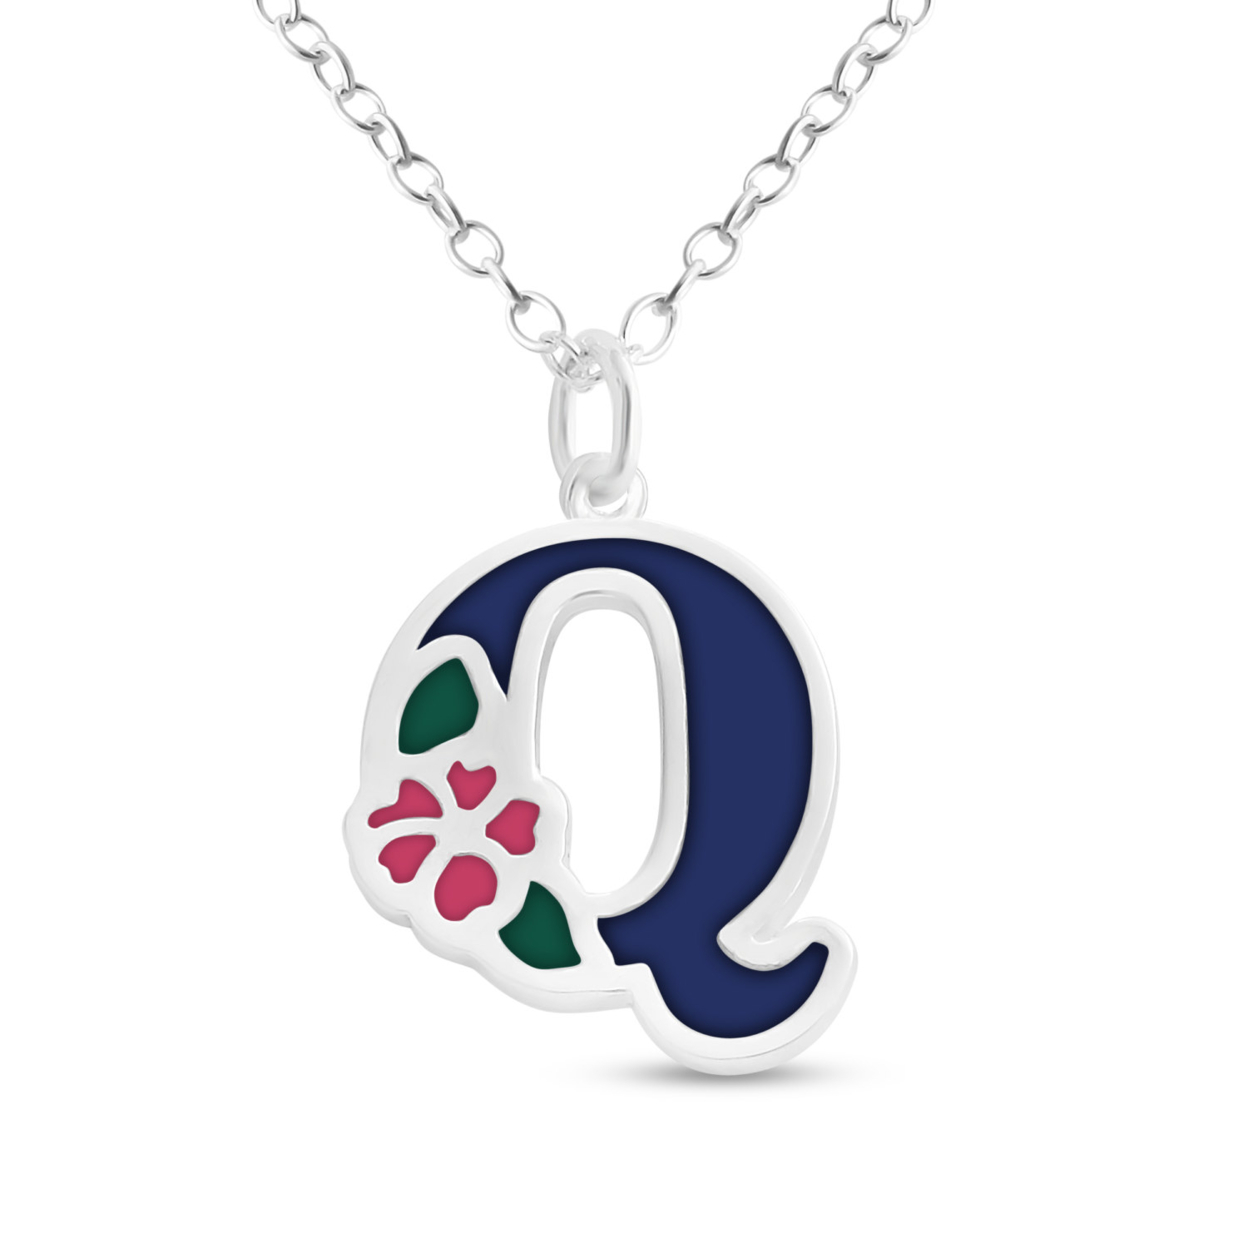 Blue Enameled Initial Letter Q With Flower Multi Colors Charm Pendant Necklace #925 Sterling Silver #azaggi N0854s_q_v1 12 Child